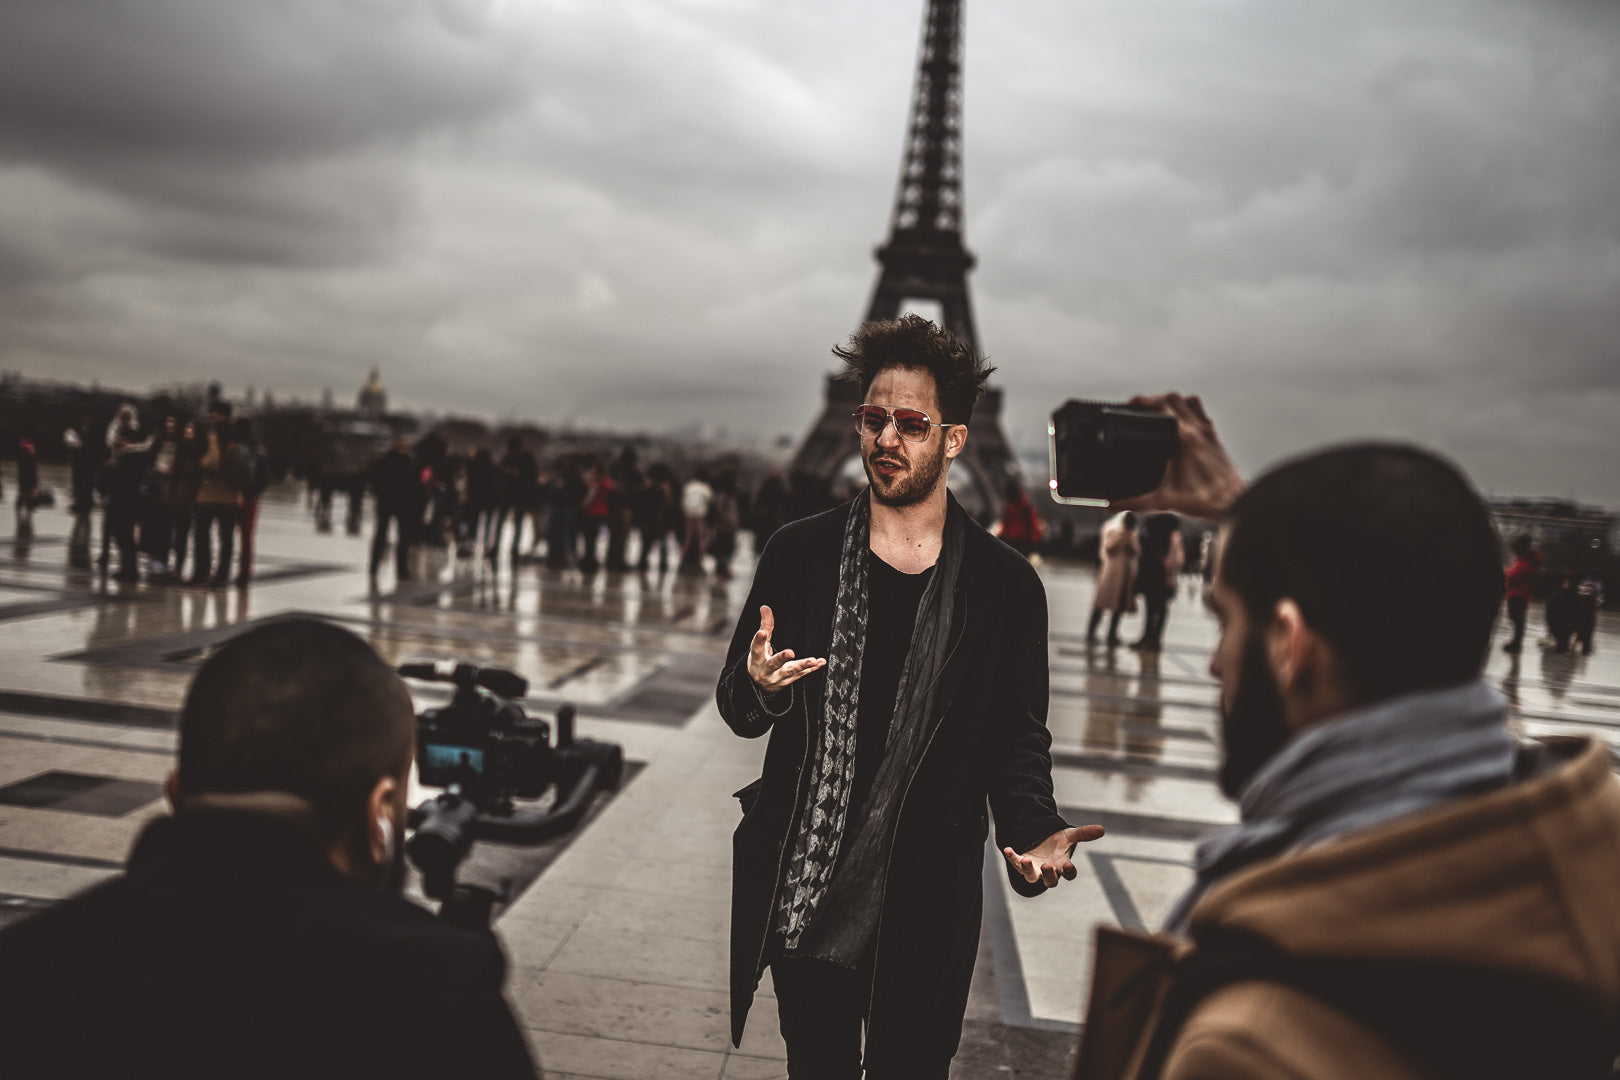 Photograph of a youtubeur in front of the Eiffel Tower